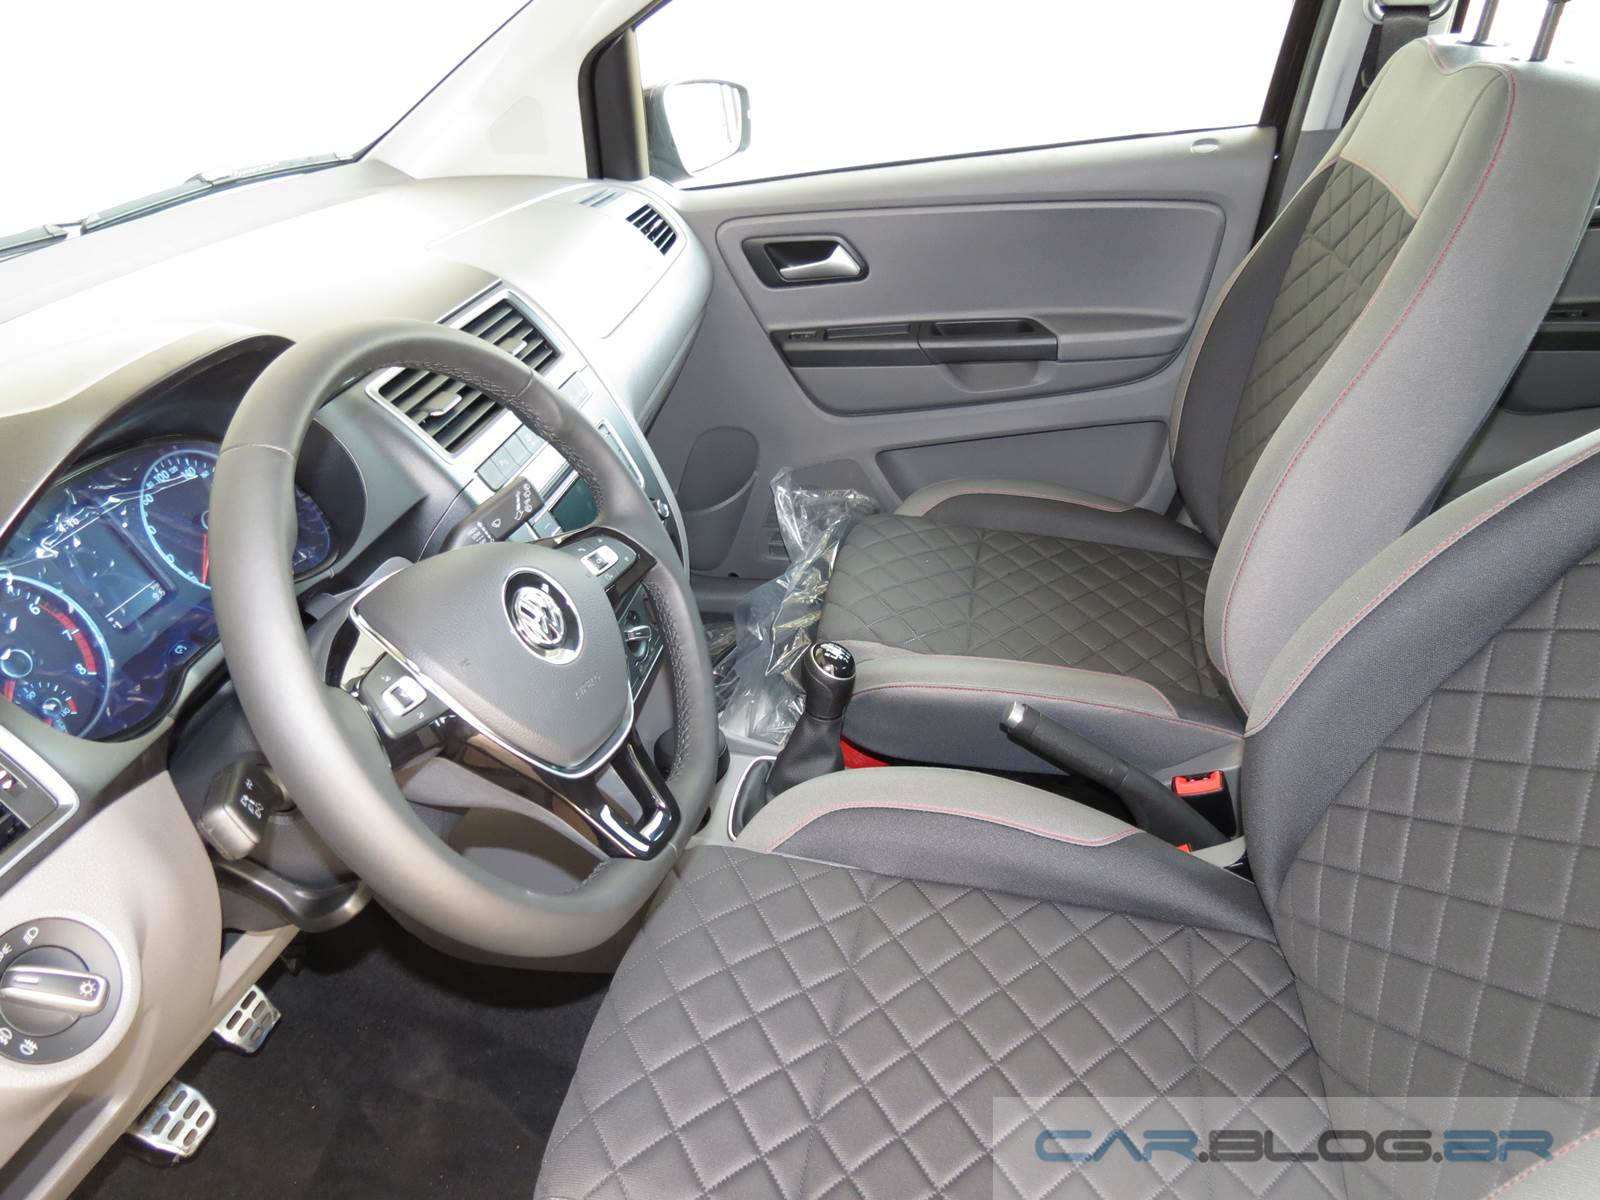 Novo VW Fox 2015 - interior